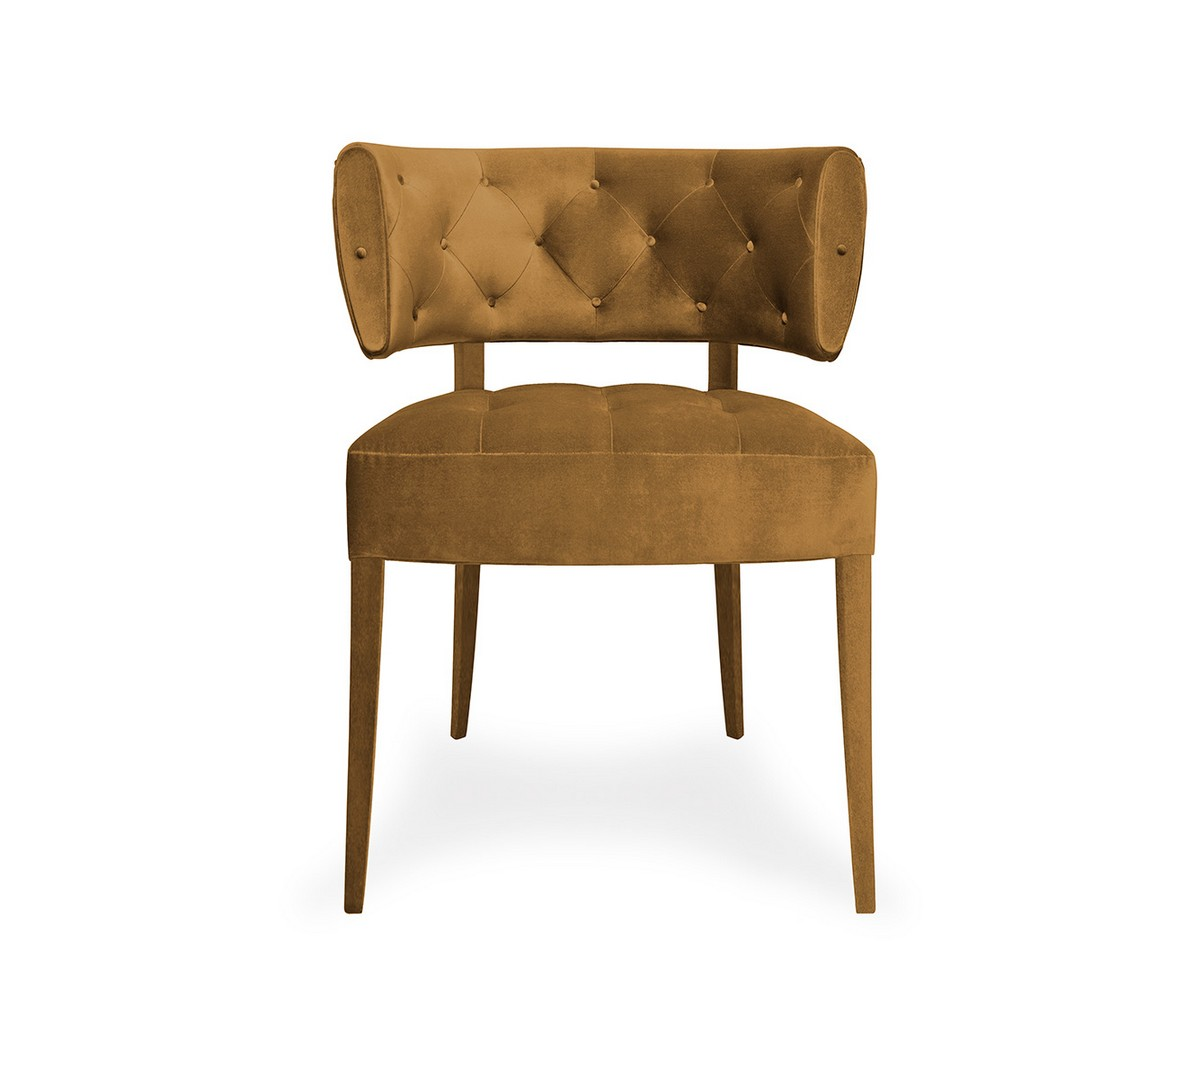 Top Velvet Dining Chairs velvet dining chairs Top Velvet Dining Chairs zulu